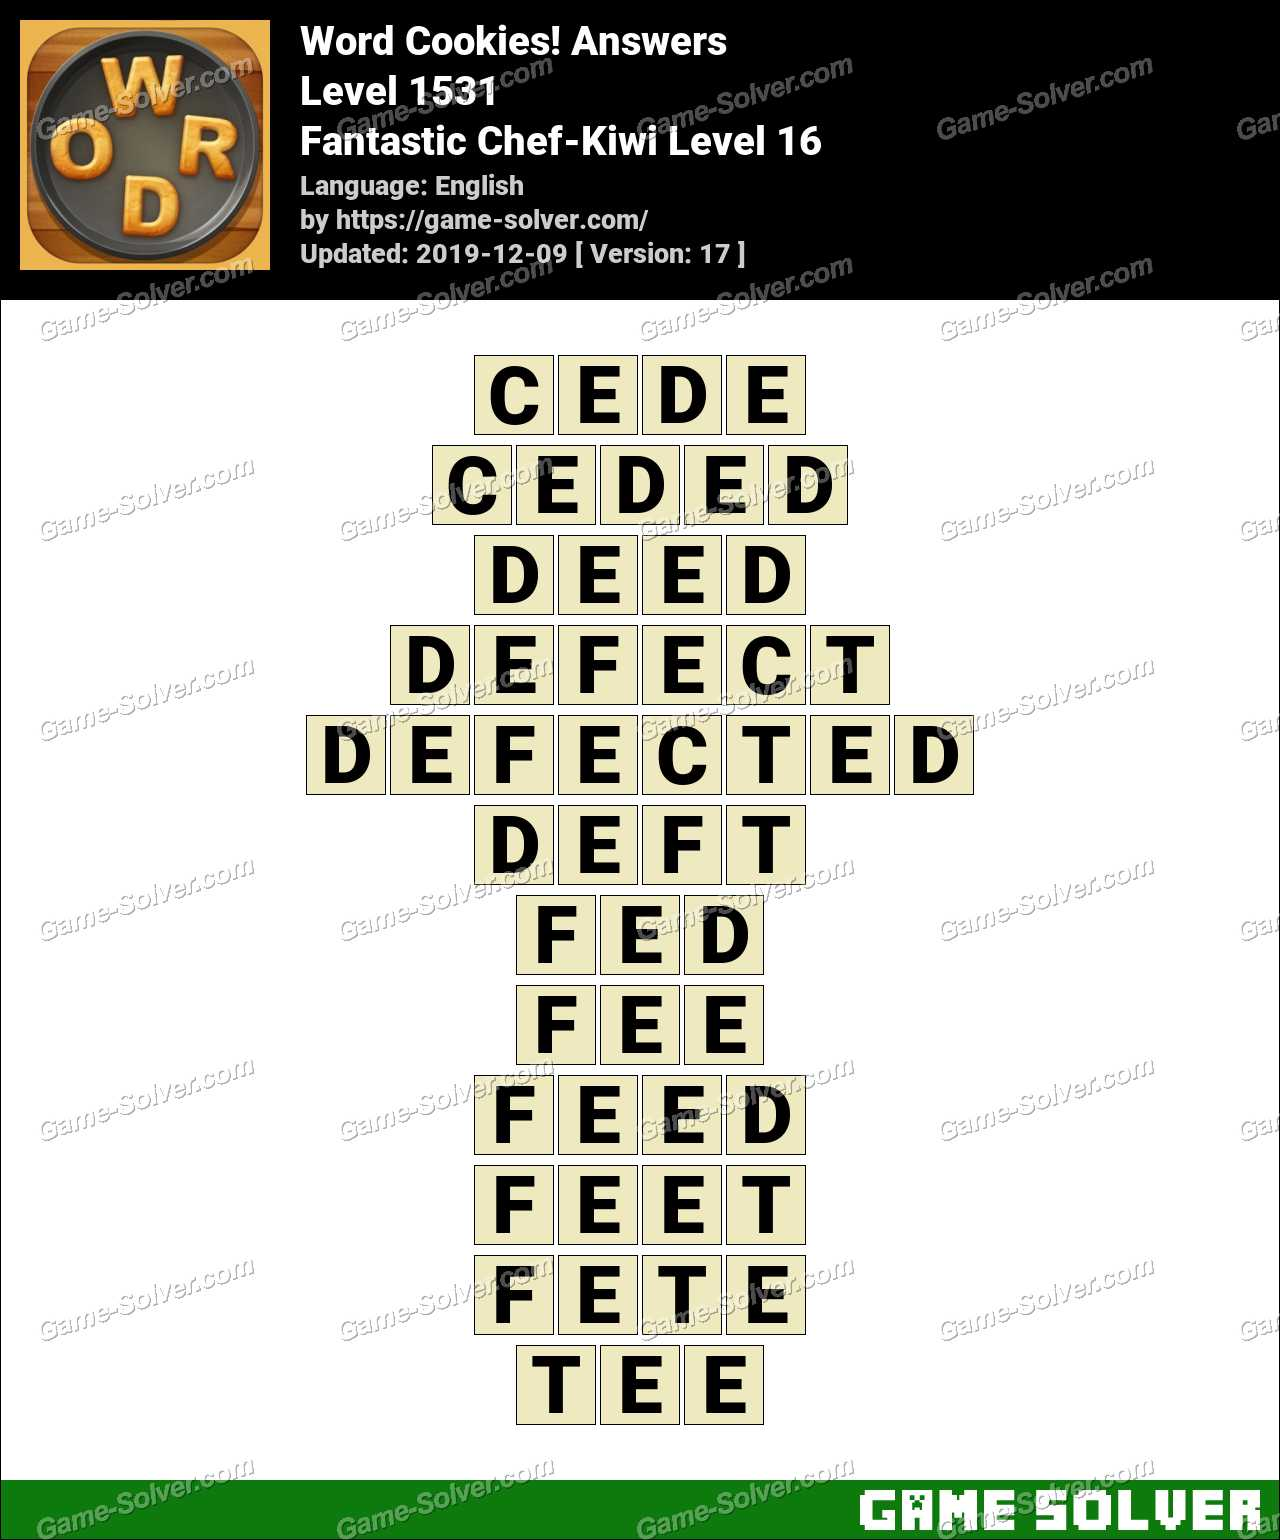 Word Cookies Fantastic Chef-Kiwi Level 16 Answers